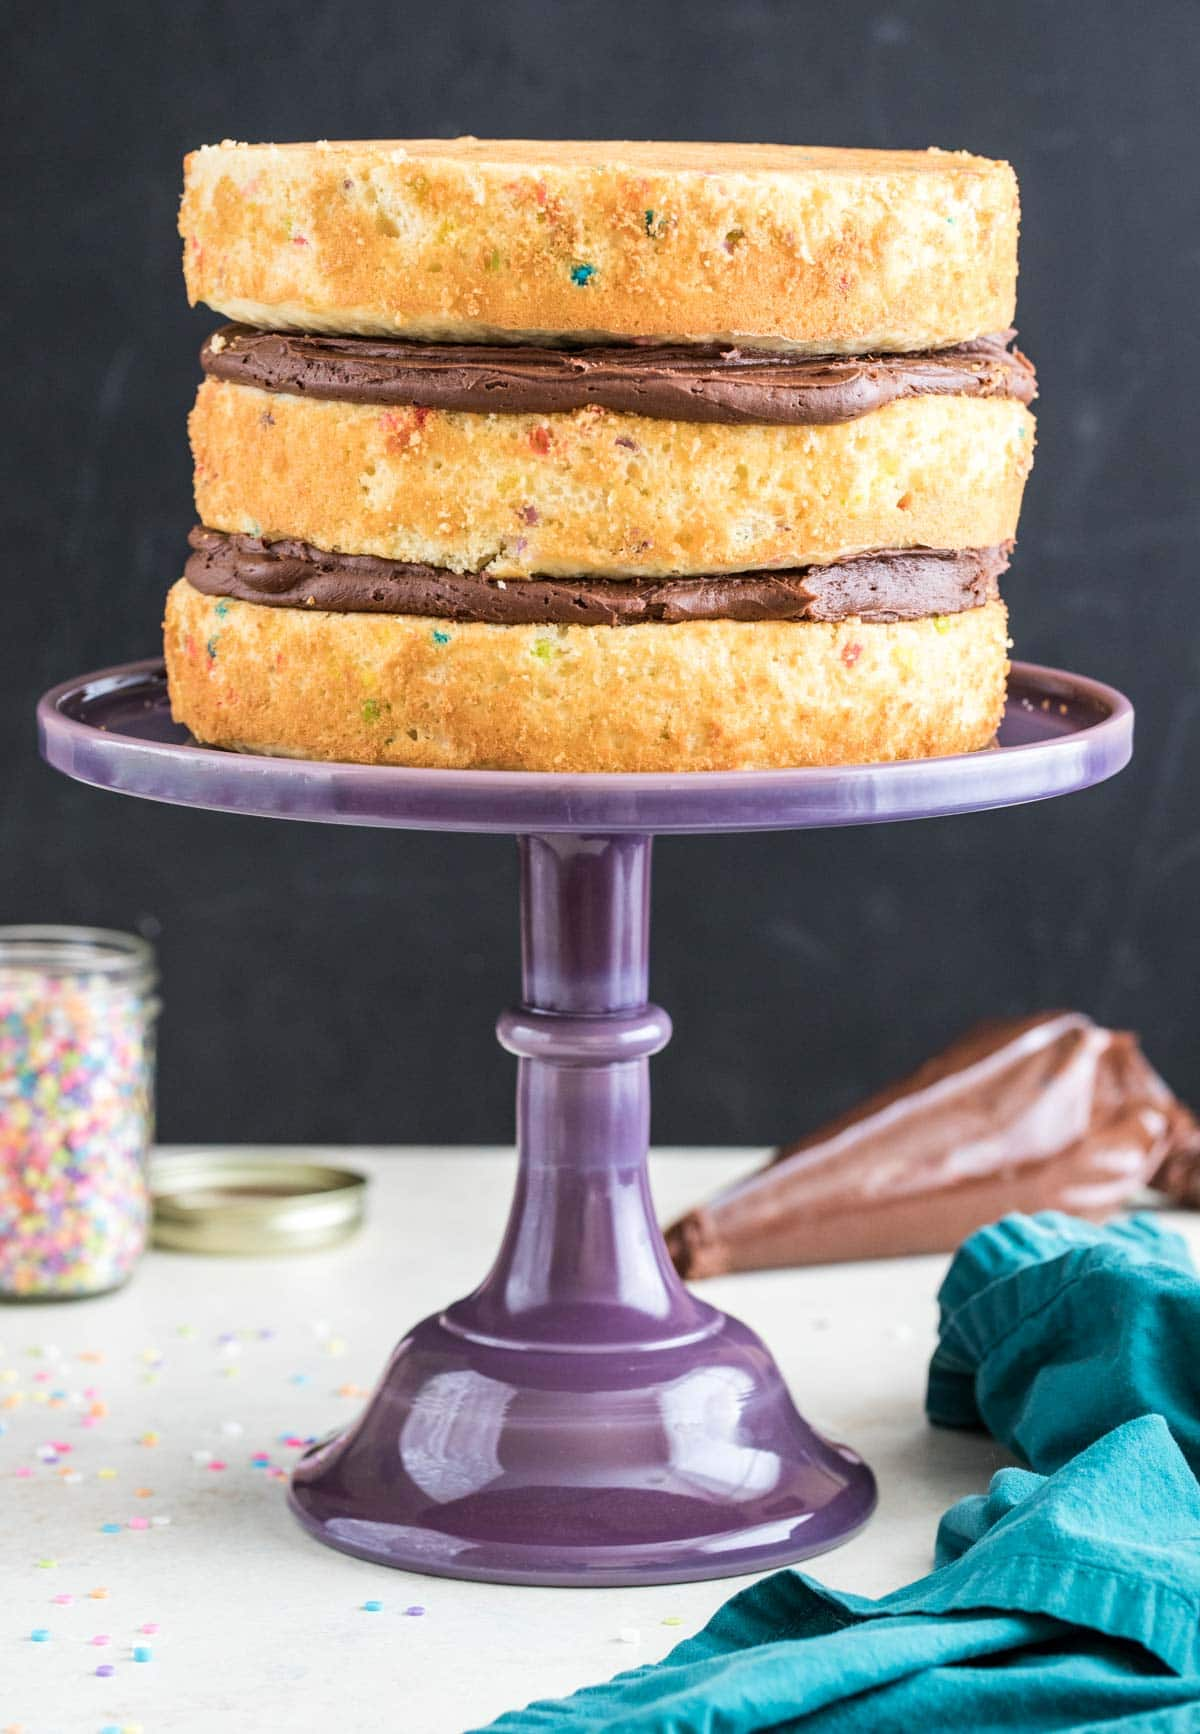 Purple glss cake stand with three layer cake on top